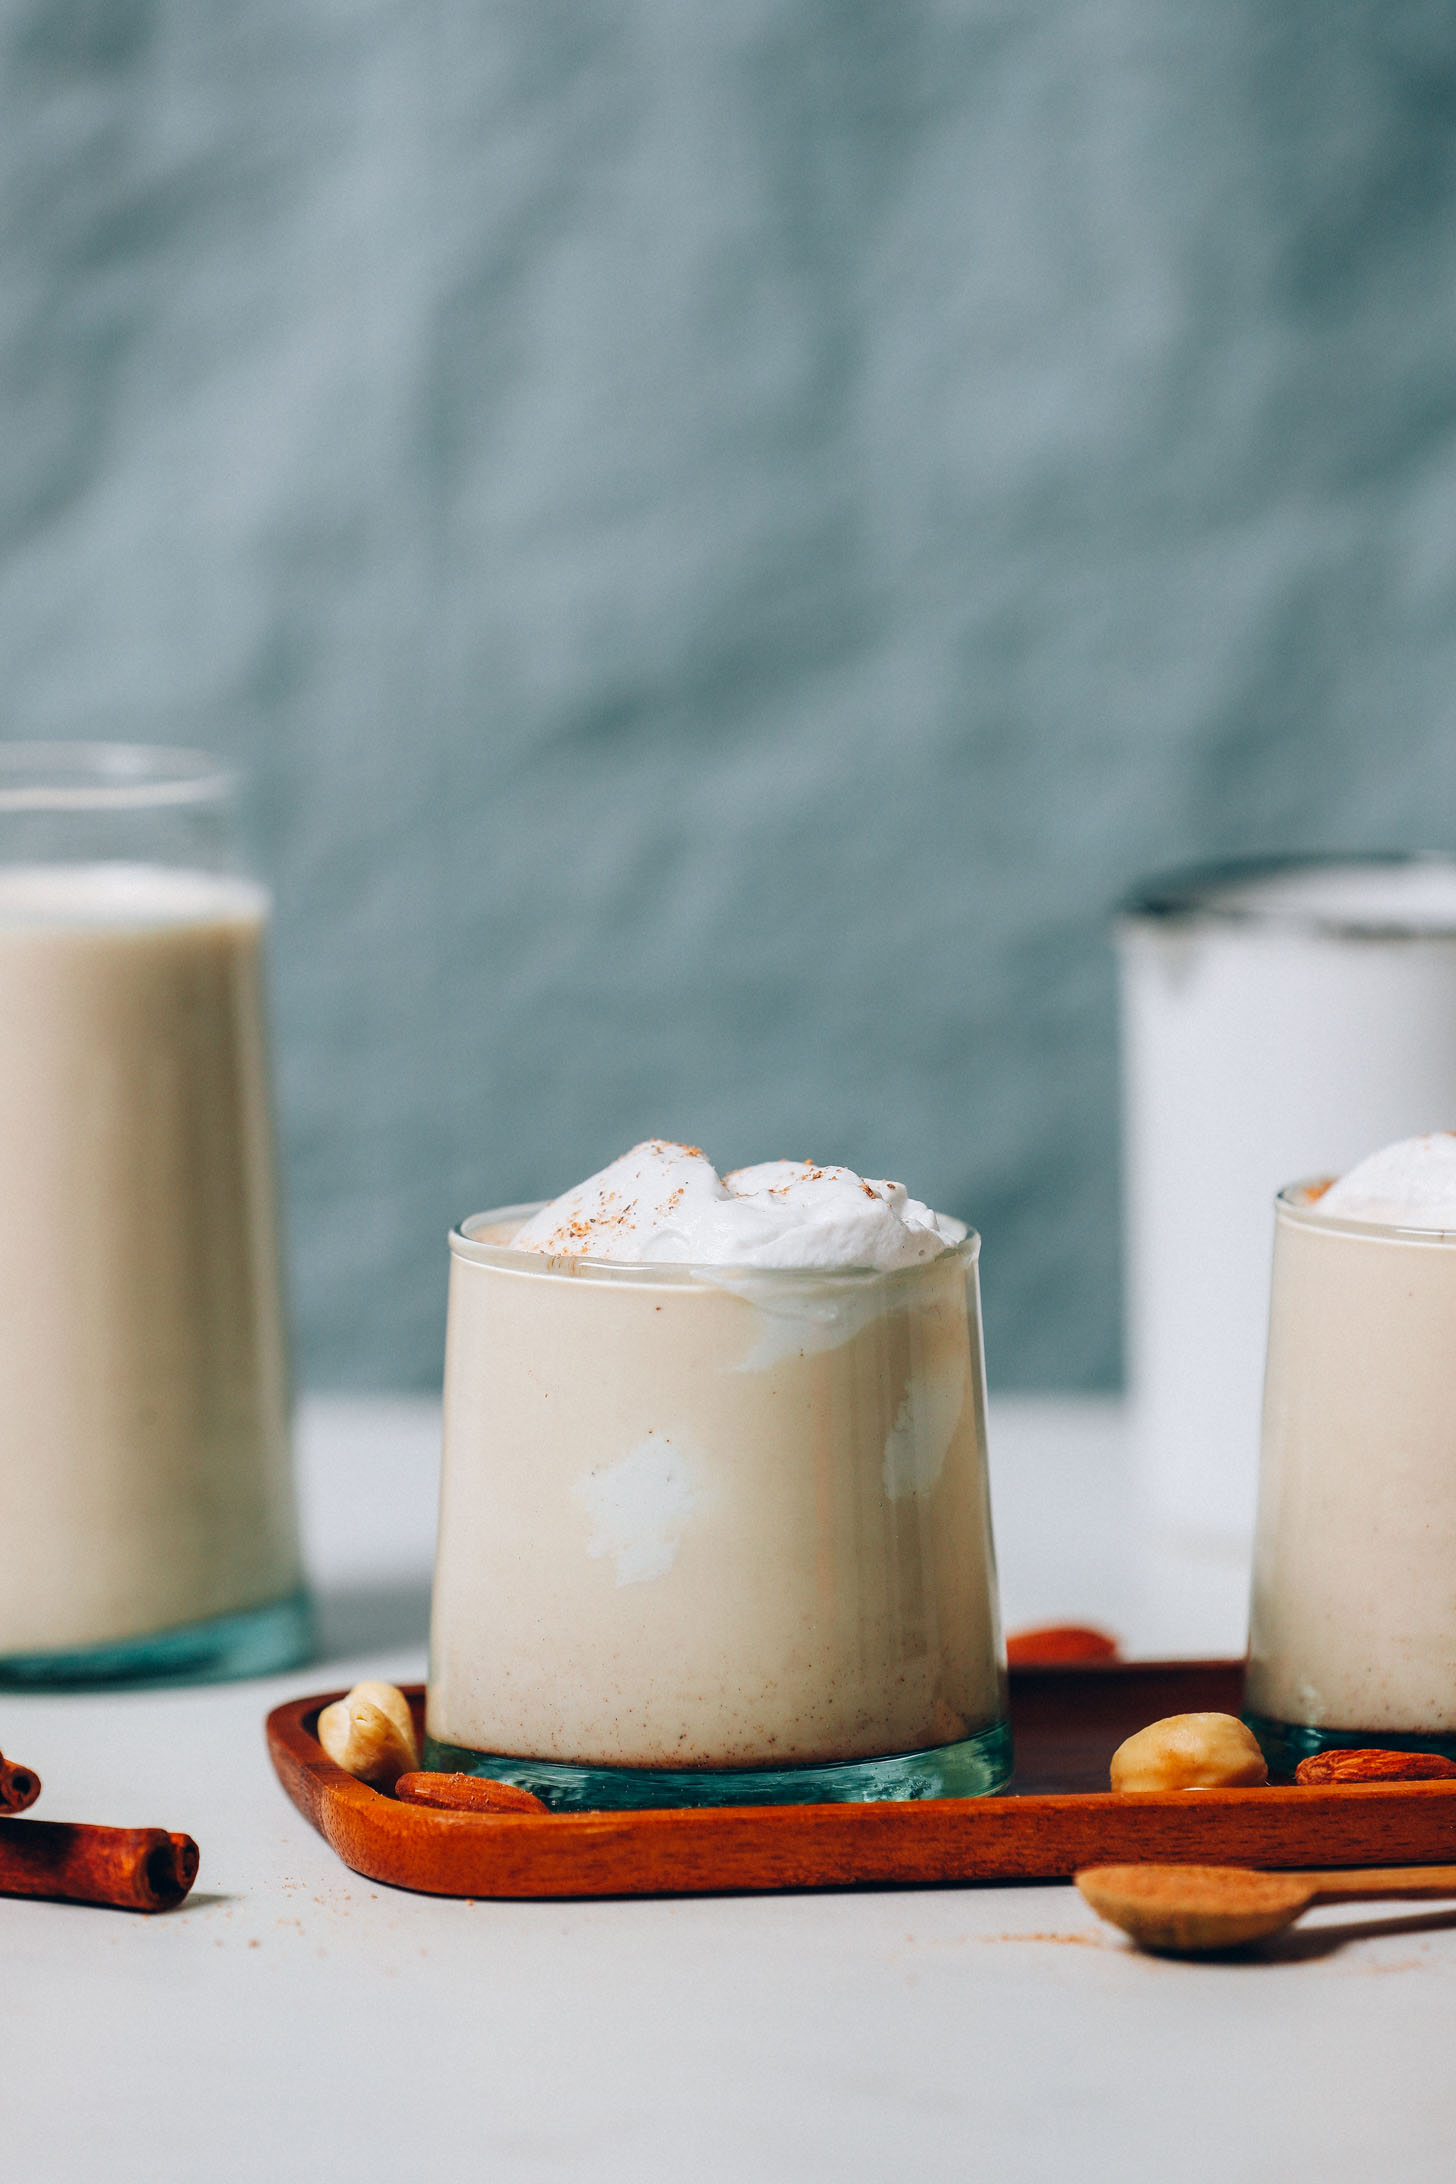 Two glasses of our Vegan Egg Nog recipe topped with coconut whipped cream